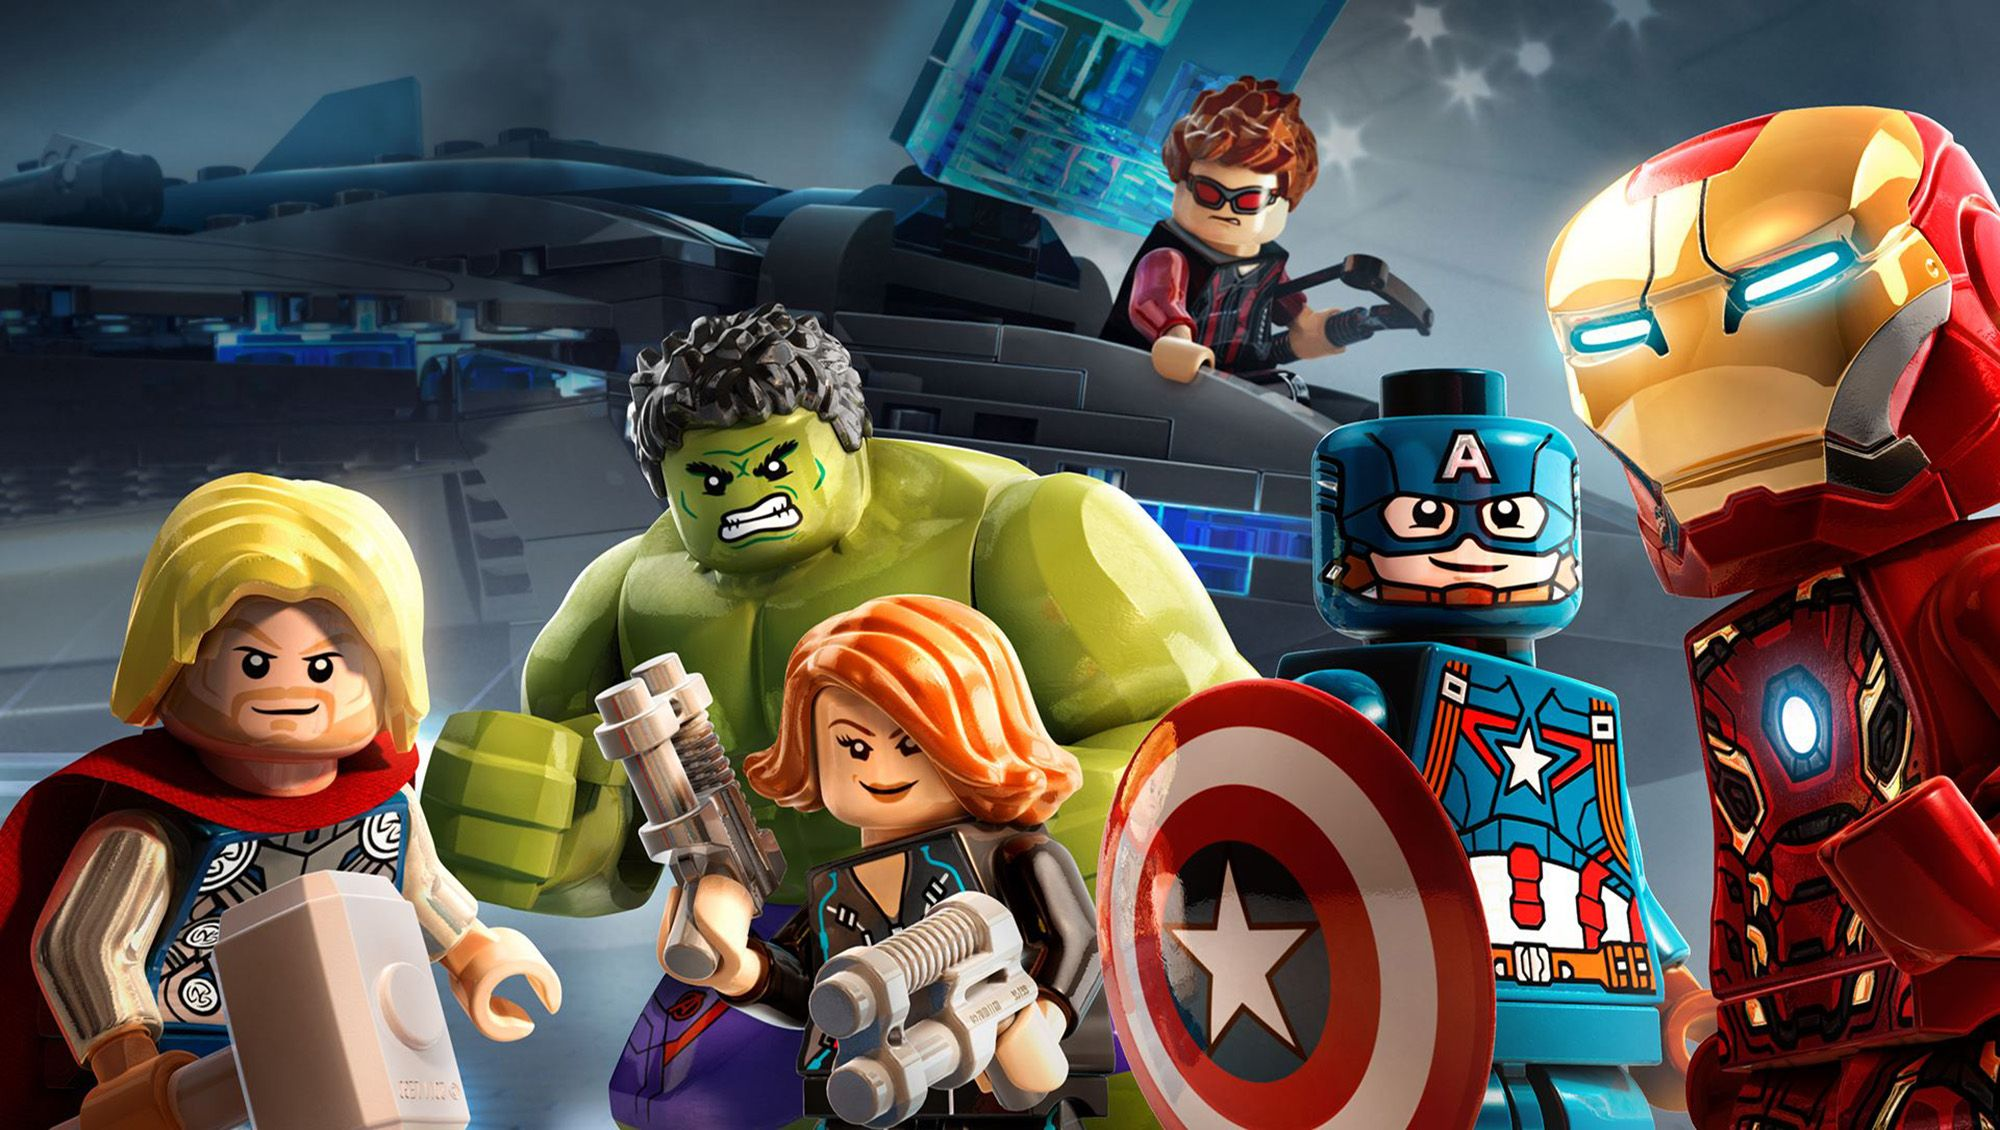 Marvel square enix and avengers game announce multi game partnership